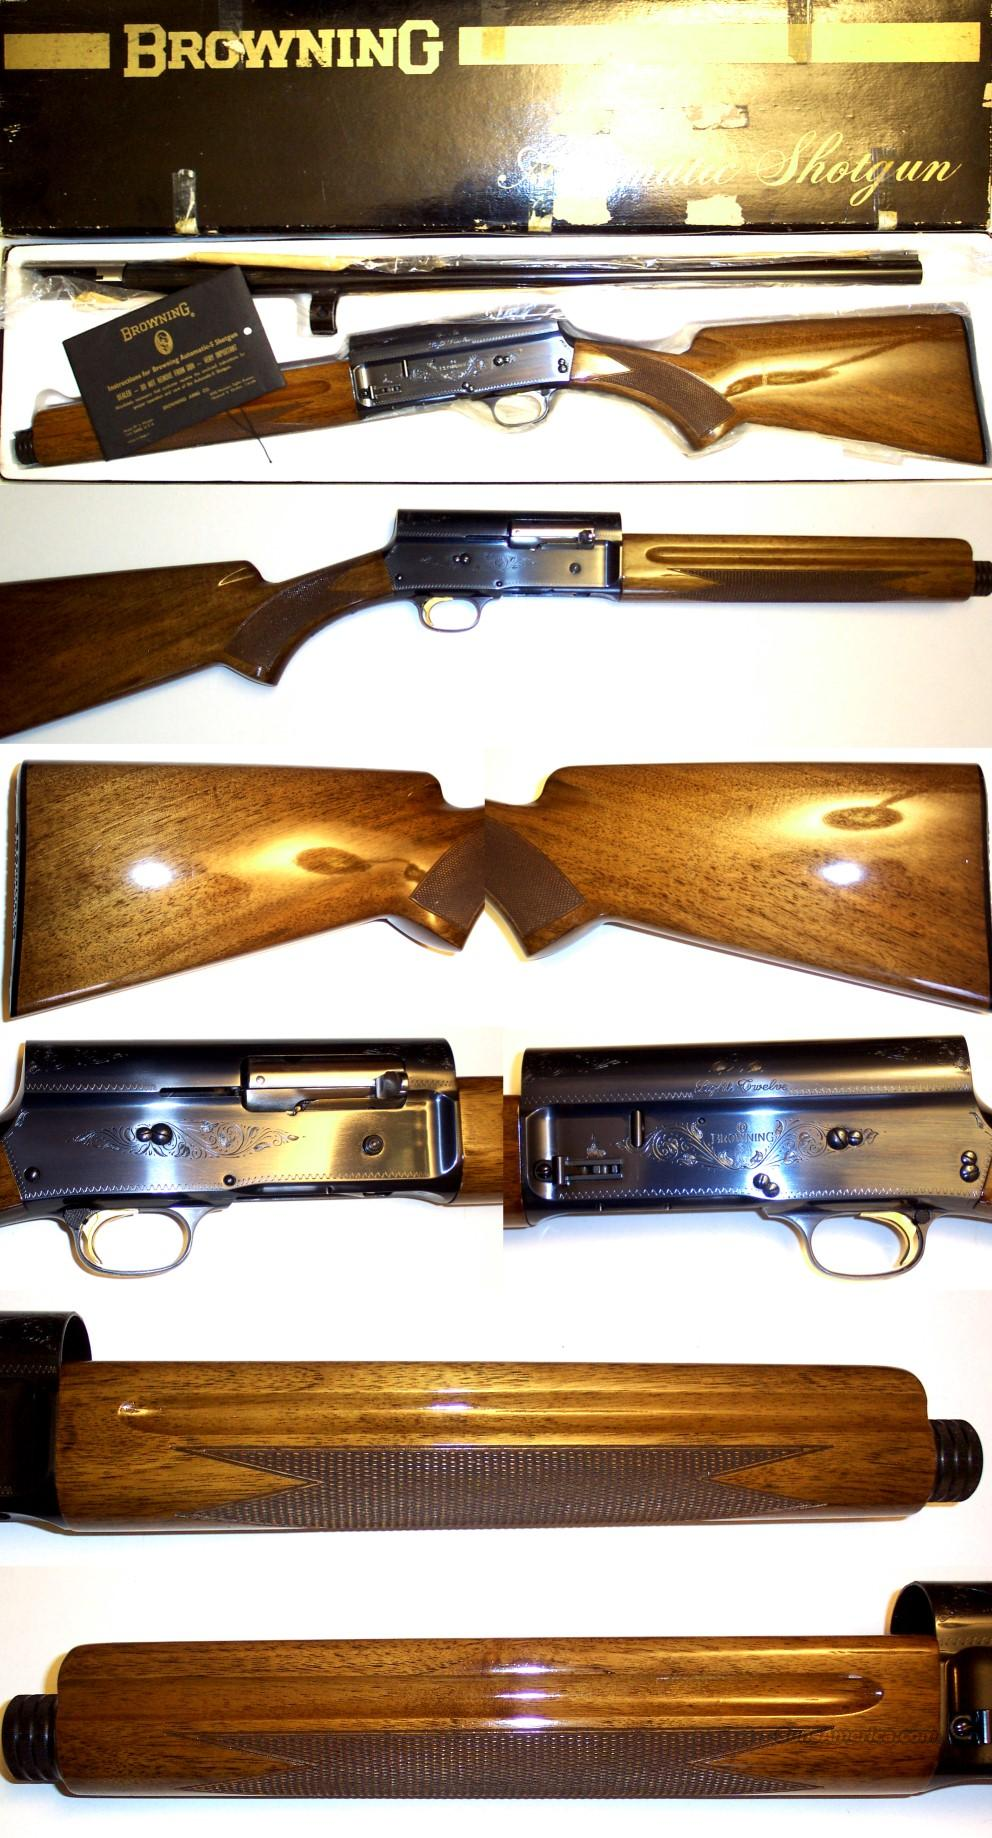 '72 Belgium A5 like new in box with papers  Guns > Shotguns > Browning Shotguns > Autoloaders > Hunting